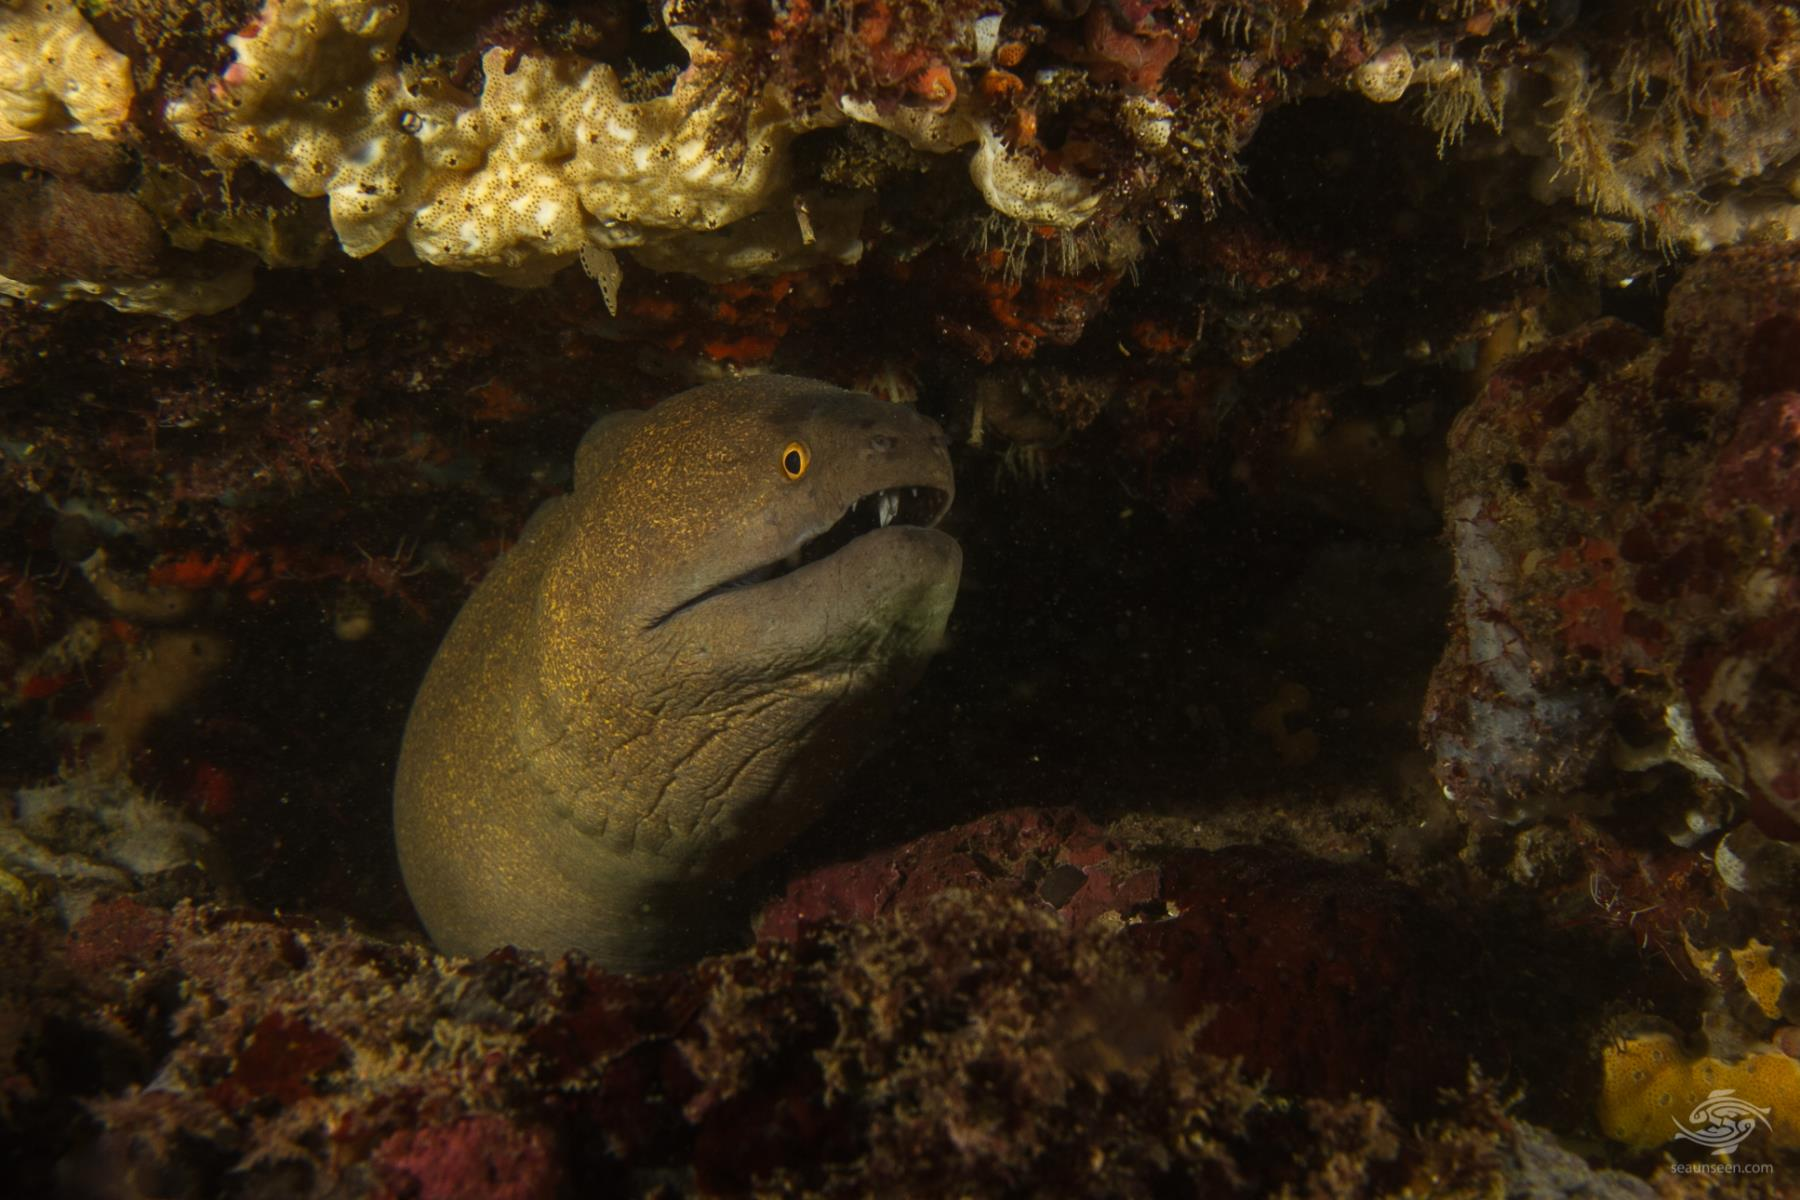 Giant Moray Eel Bongoyo patches Dar es Salaam